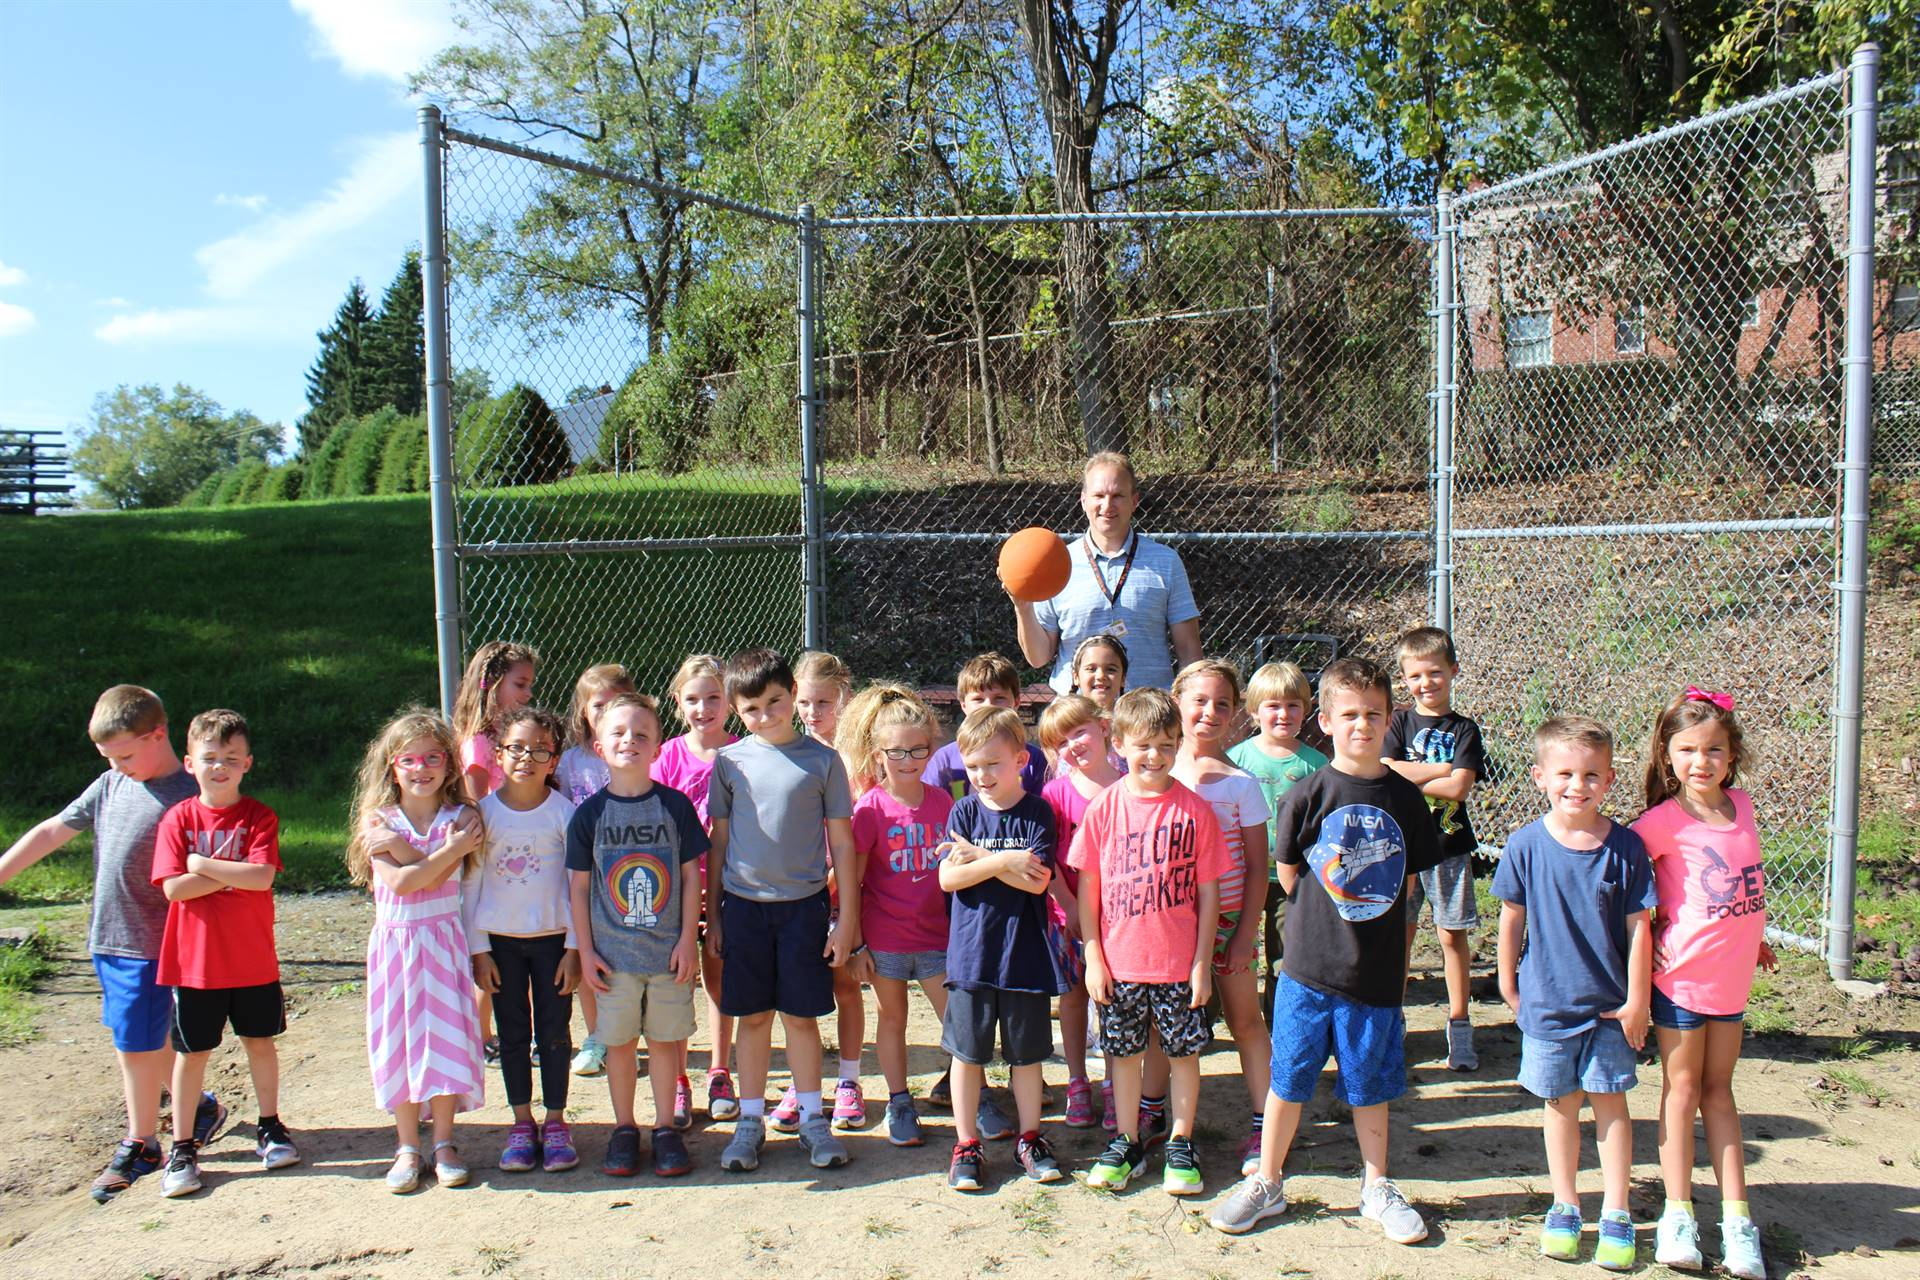 Mrs. Joseph's students and Mr. Lenosky on the field to play kickball